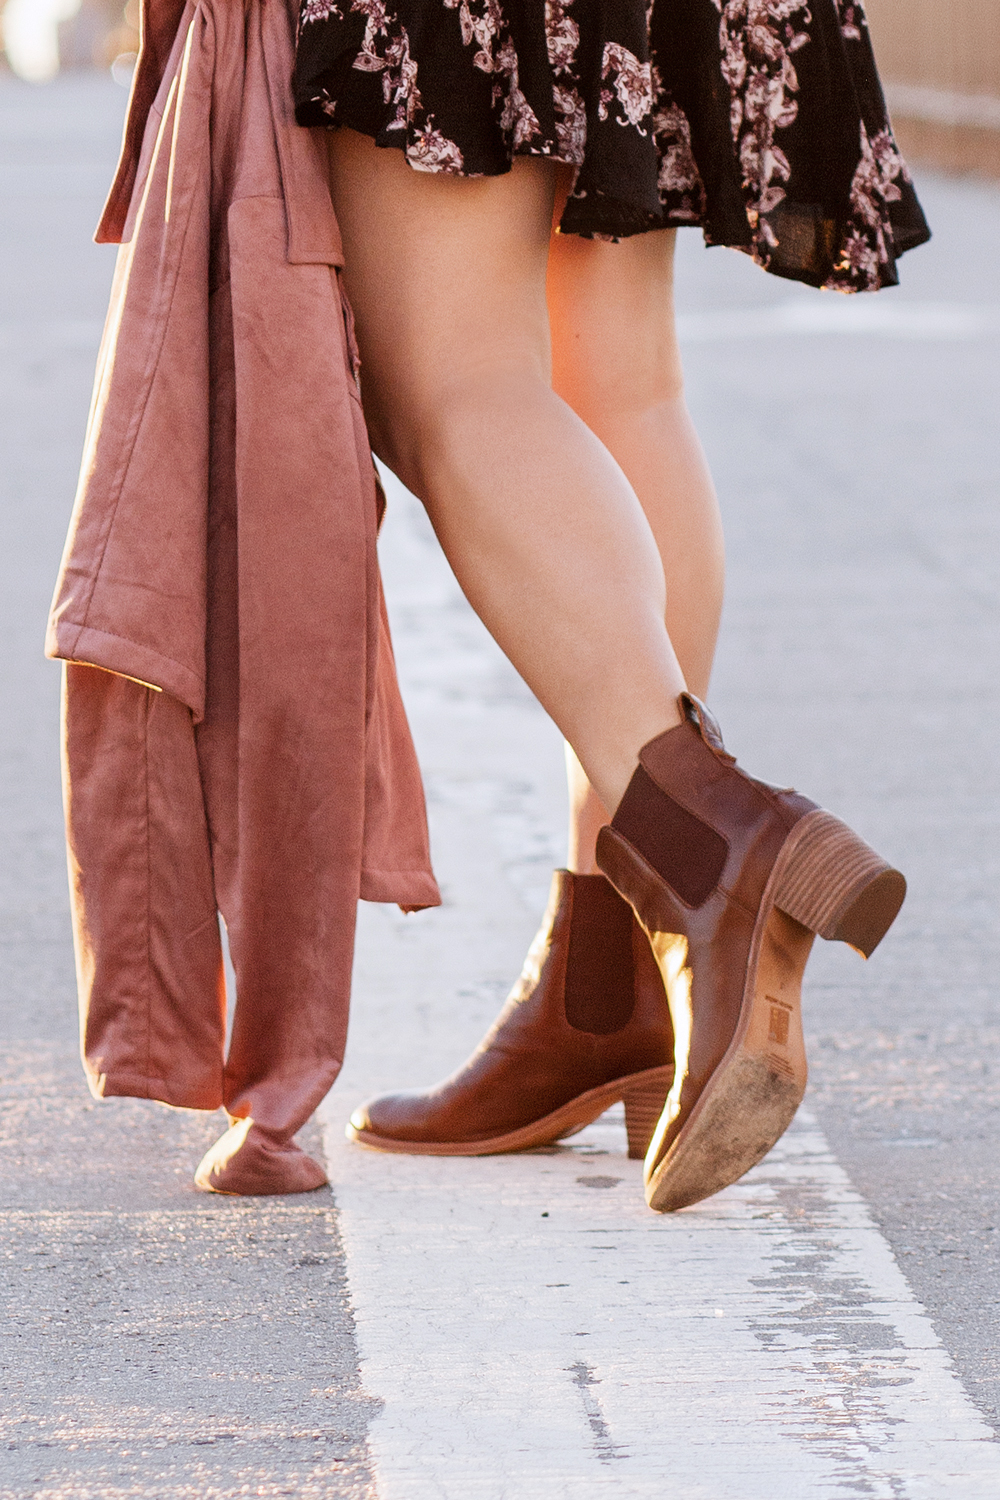 09brooklynbridge-nyc-newyork-madewell-leather-boots-travel-style-fashion